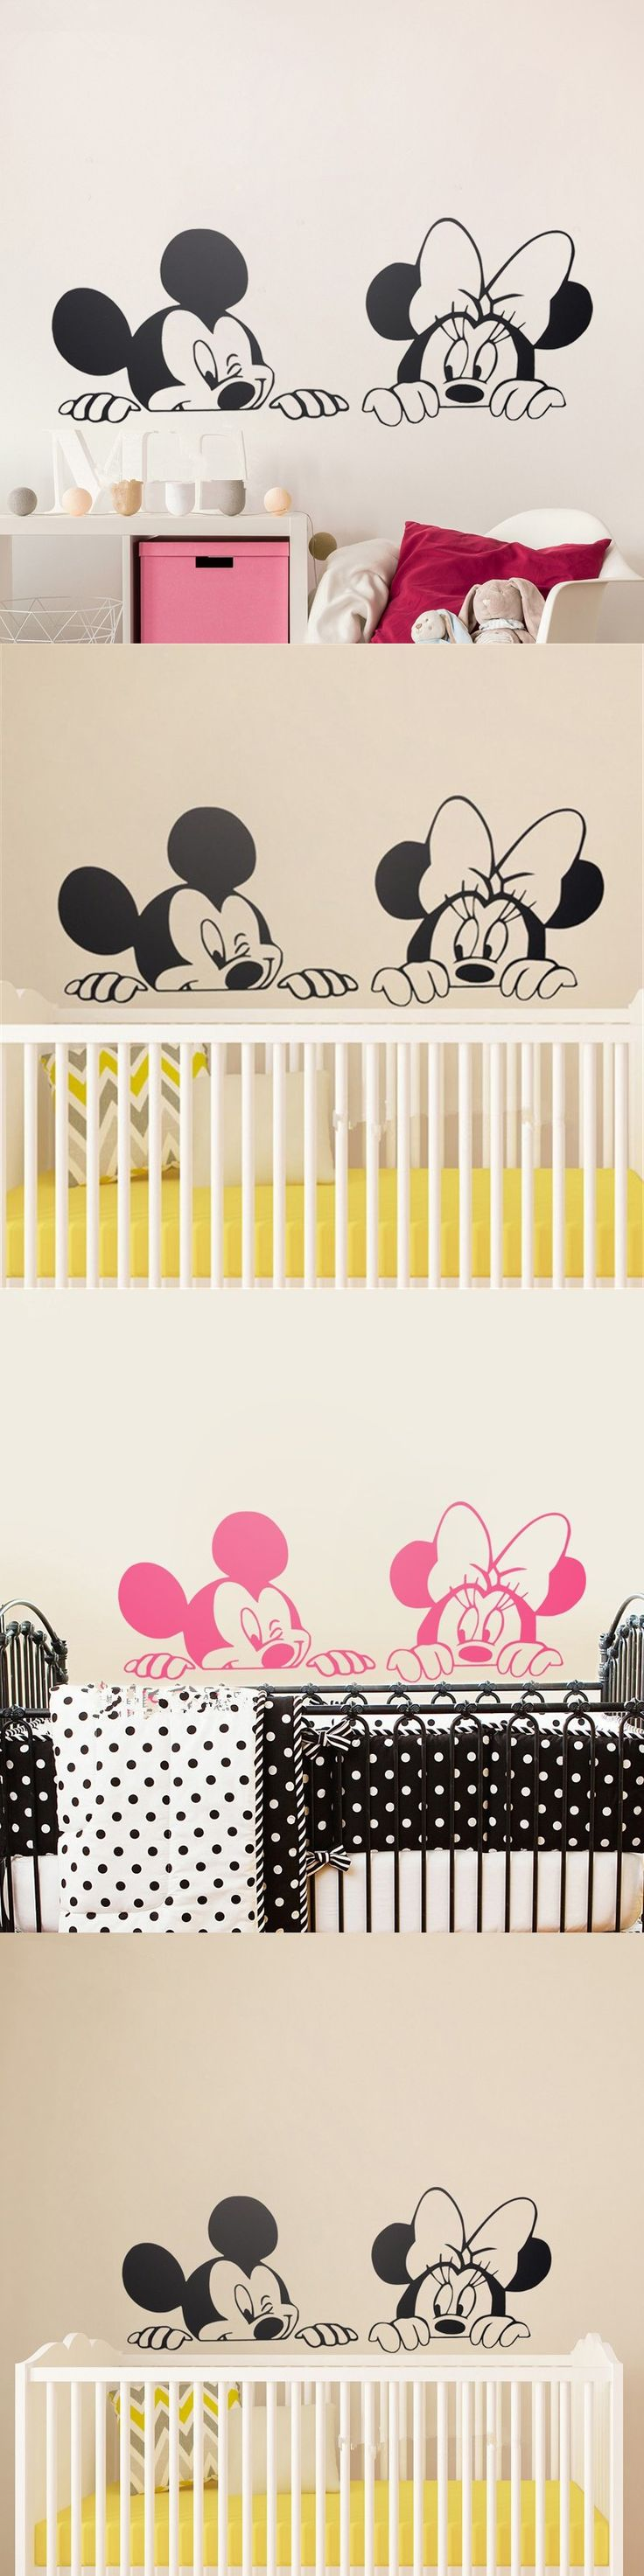 best 25 wall stickers ideas on pinterest scandinavian wall cartoon mickey minnie mouse cute animal vinyl wall stickers mural wallpaper baby room decor nursery wall decal home decor